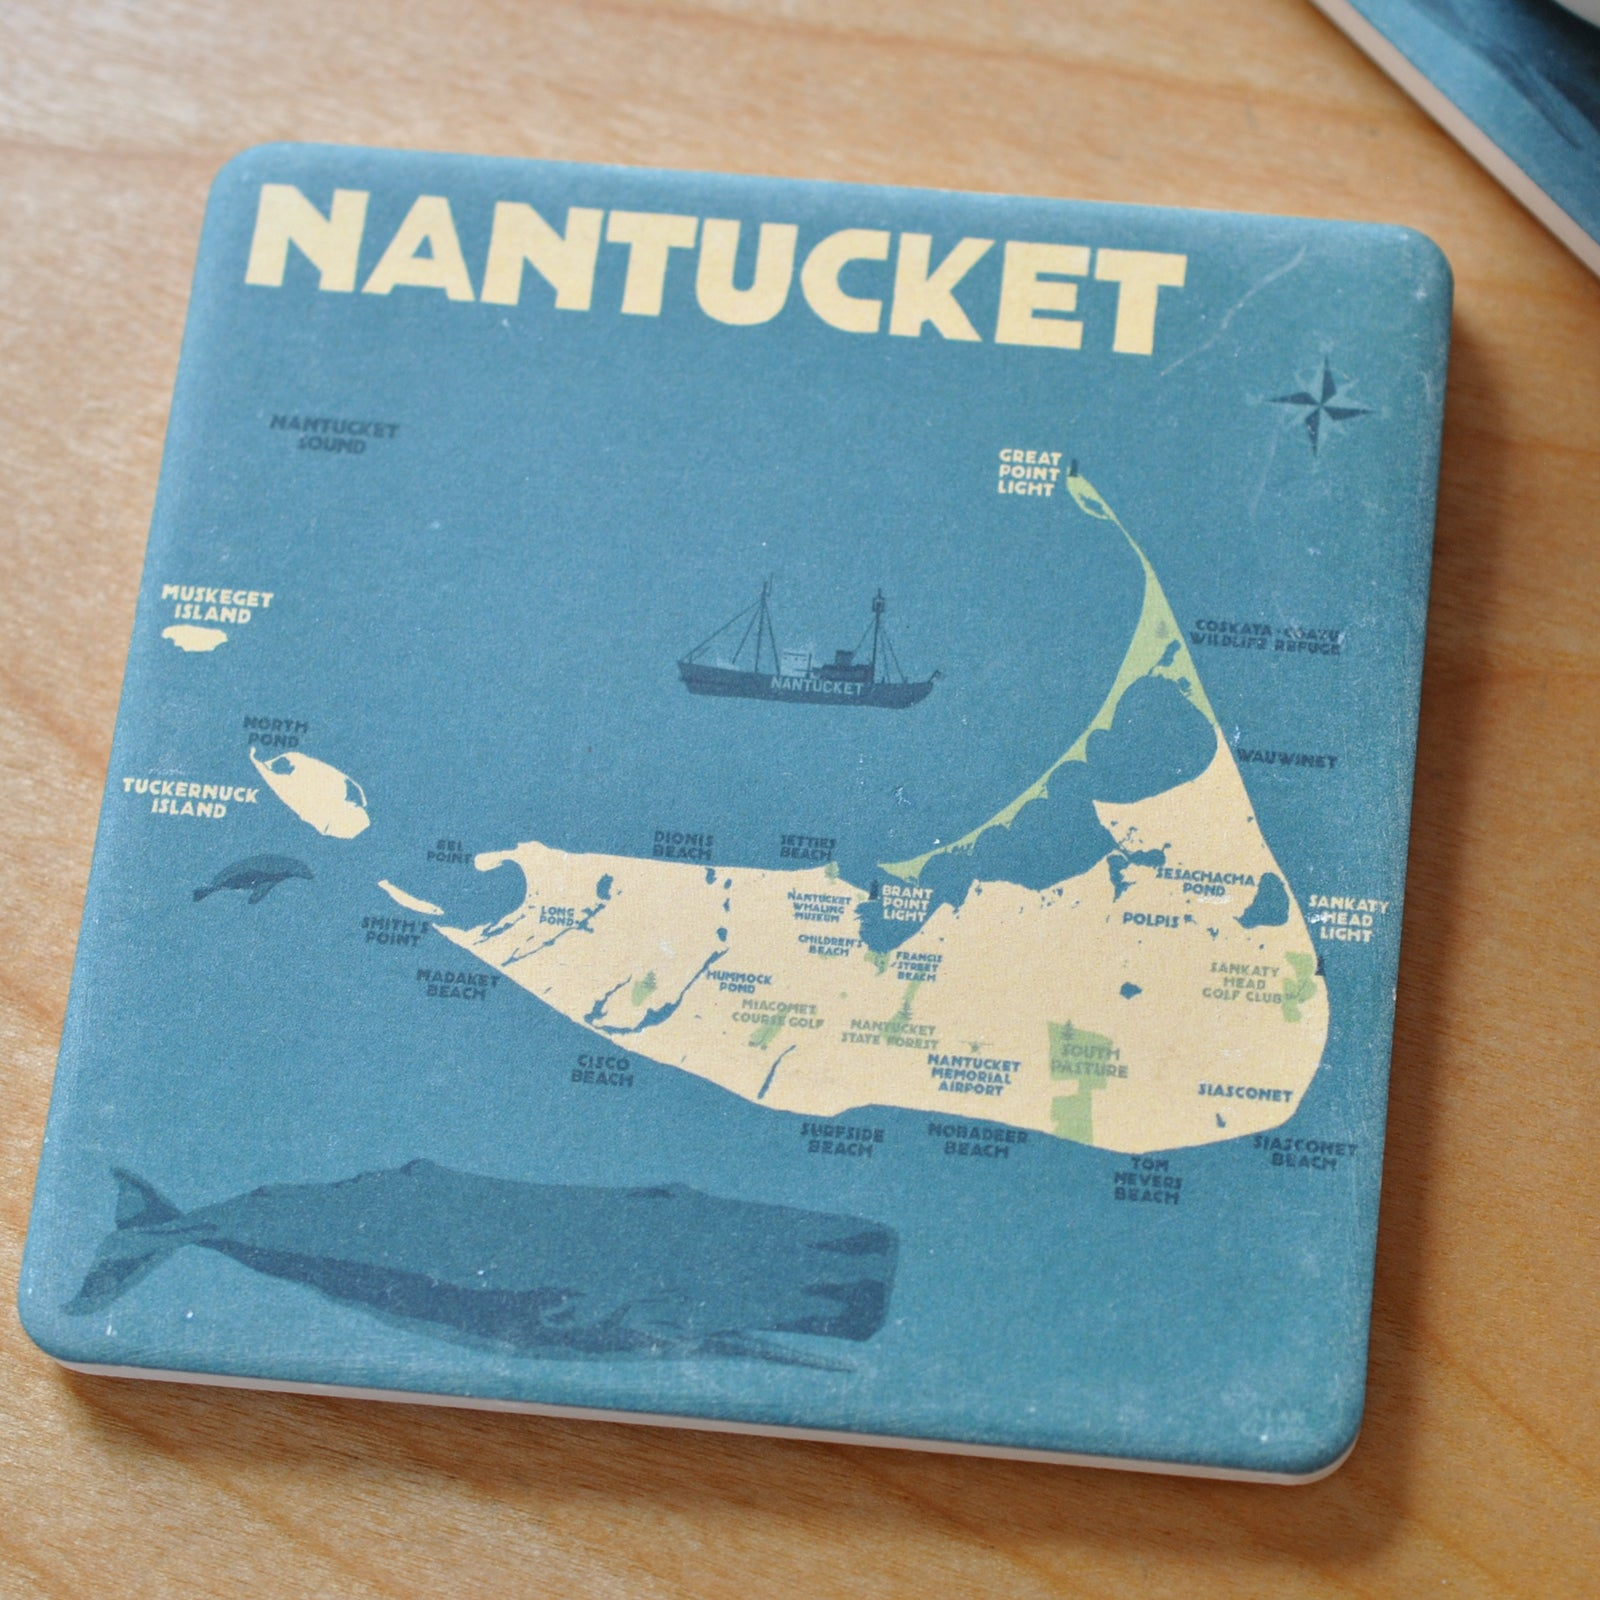 Nantucket Map Art Drink Coaster - Massachusetts